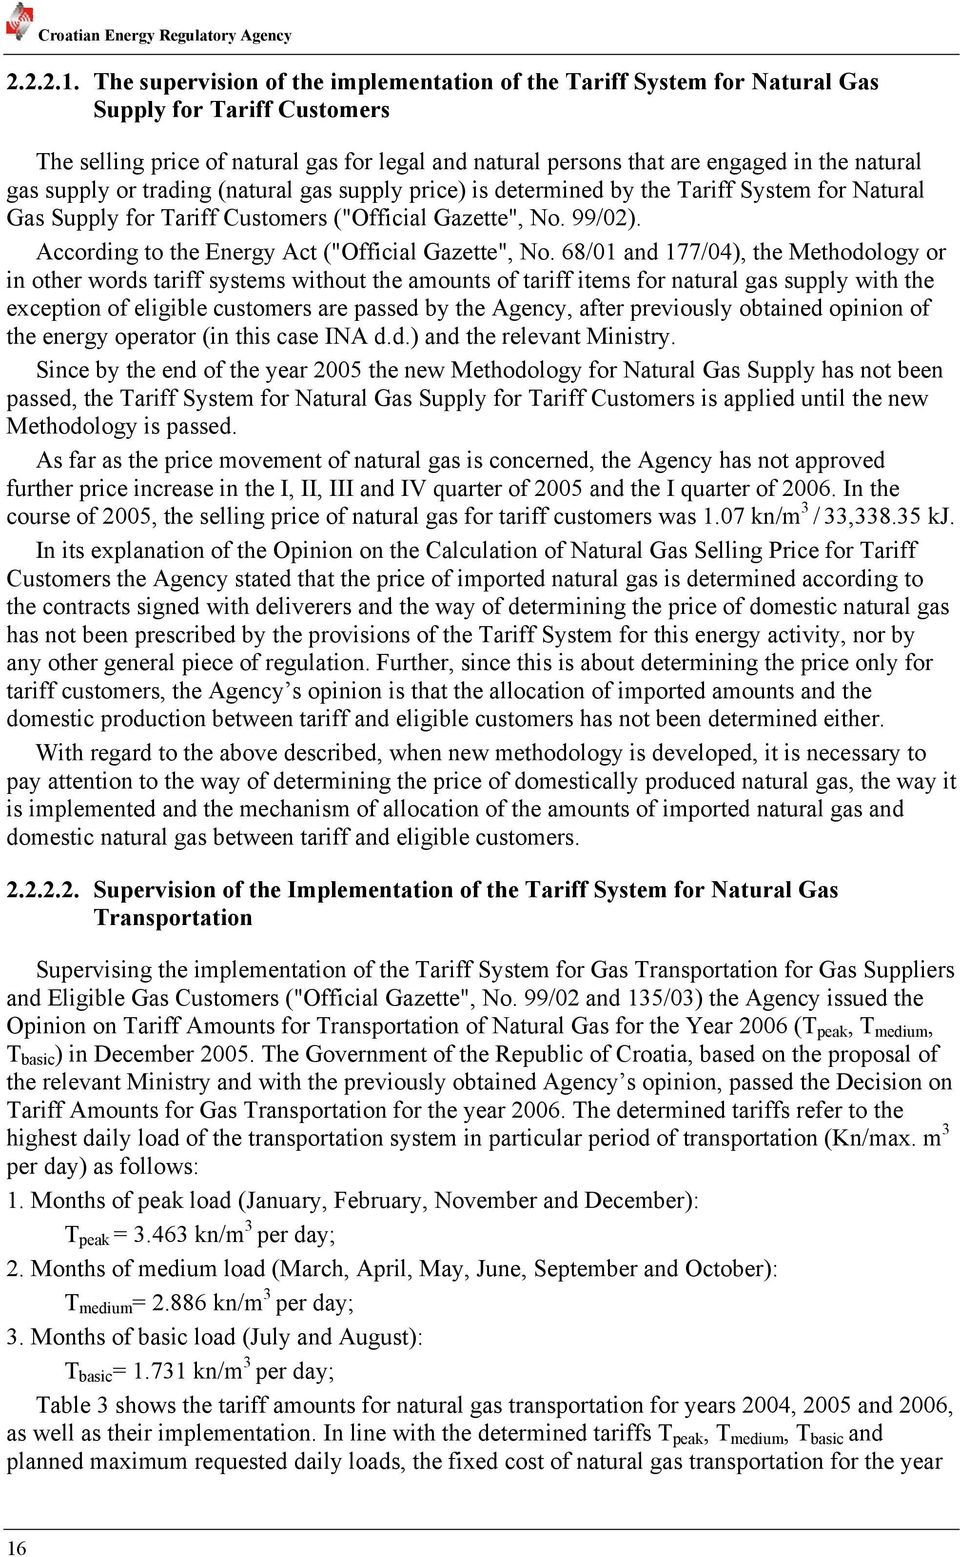 "gas supply or trading (natural gas supply price) is determined by the Tariff System for Natural Gas Supply for Tariff Customers (""Official Gazette"", No. 99/02)."